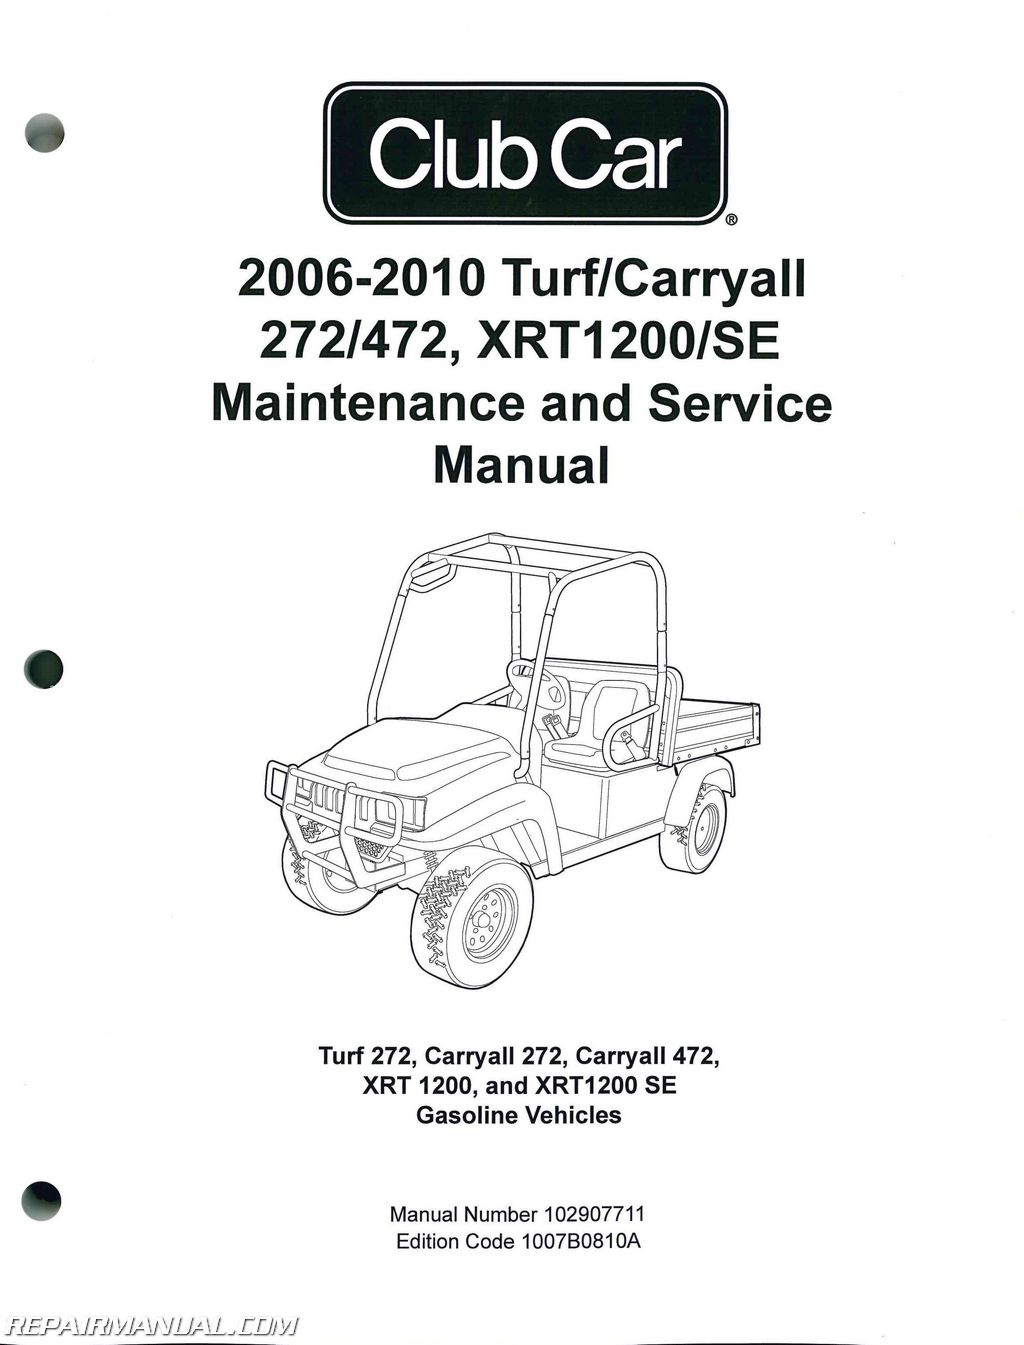 Wiring Powerdrive Electric Turf Carryall 1 Club Car Parts